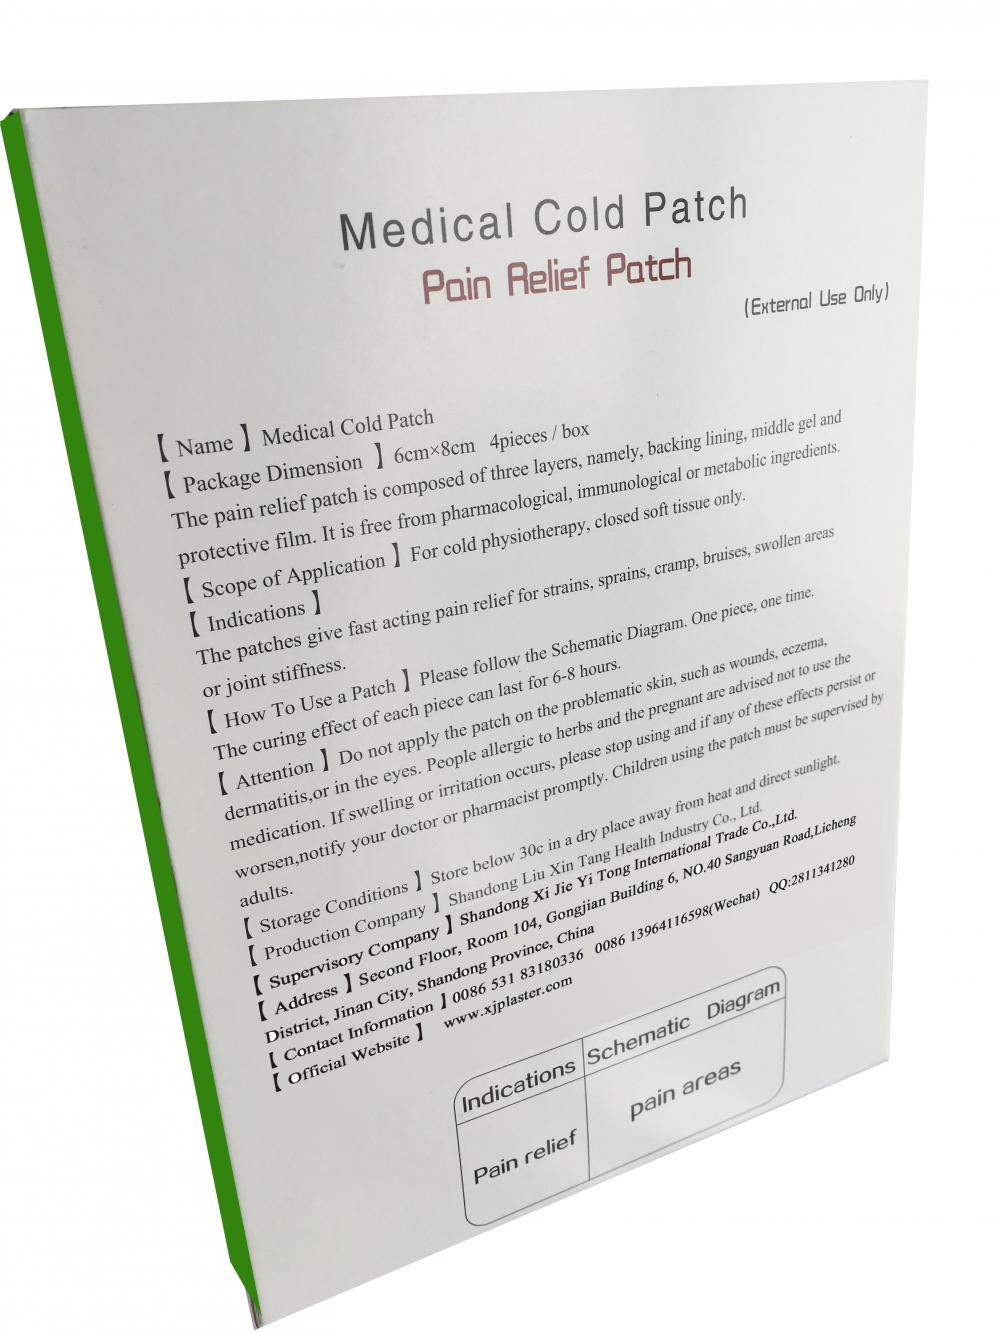 The Pain Relief Patch